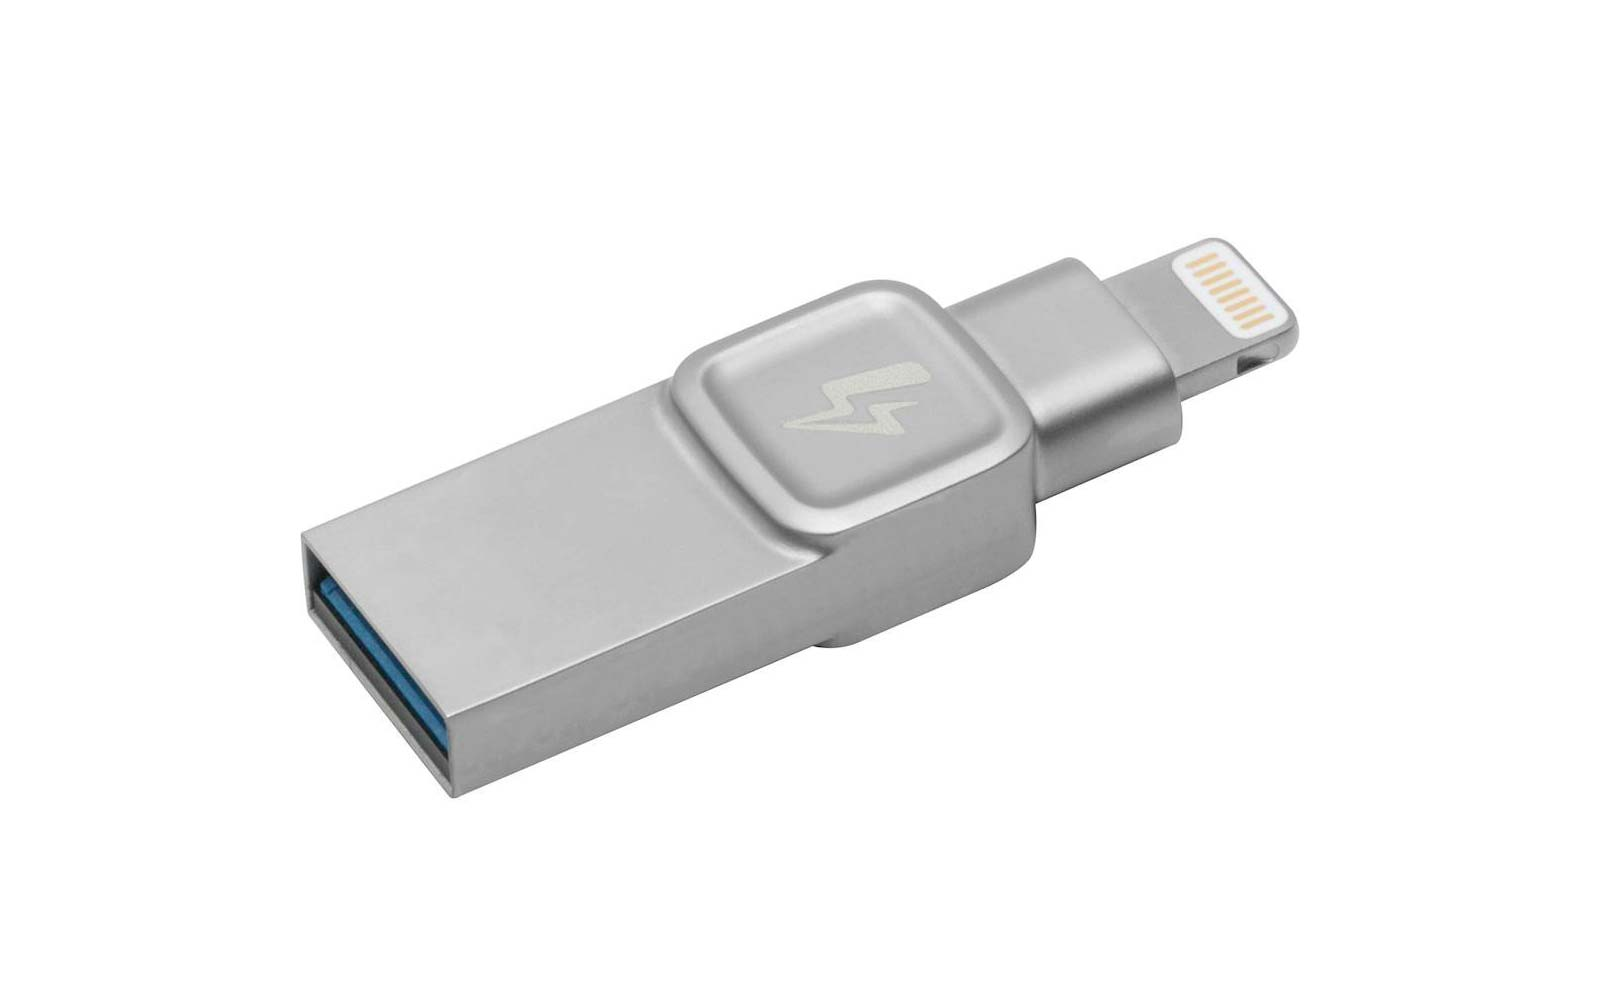 kingston data traveler bolt duo flash drive